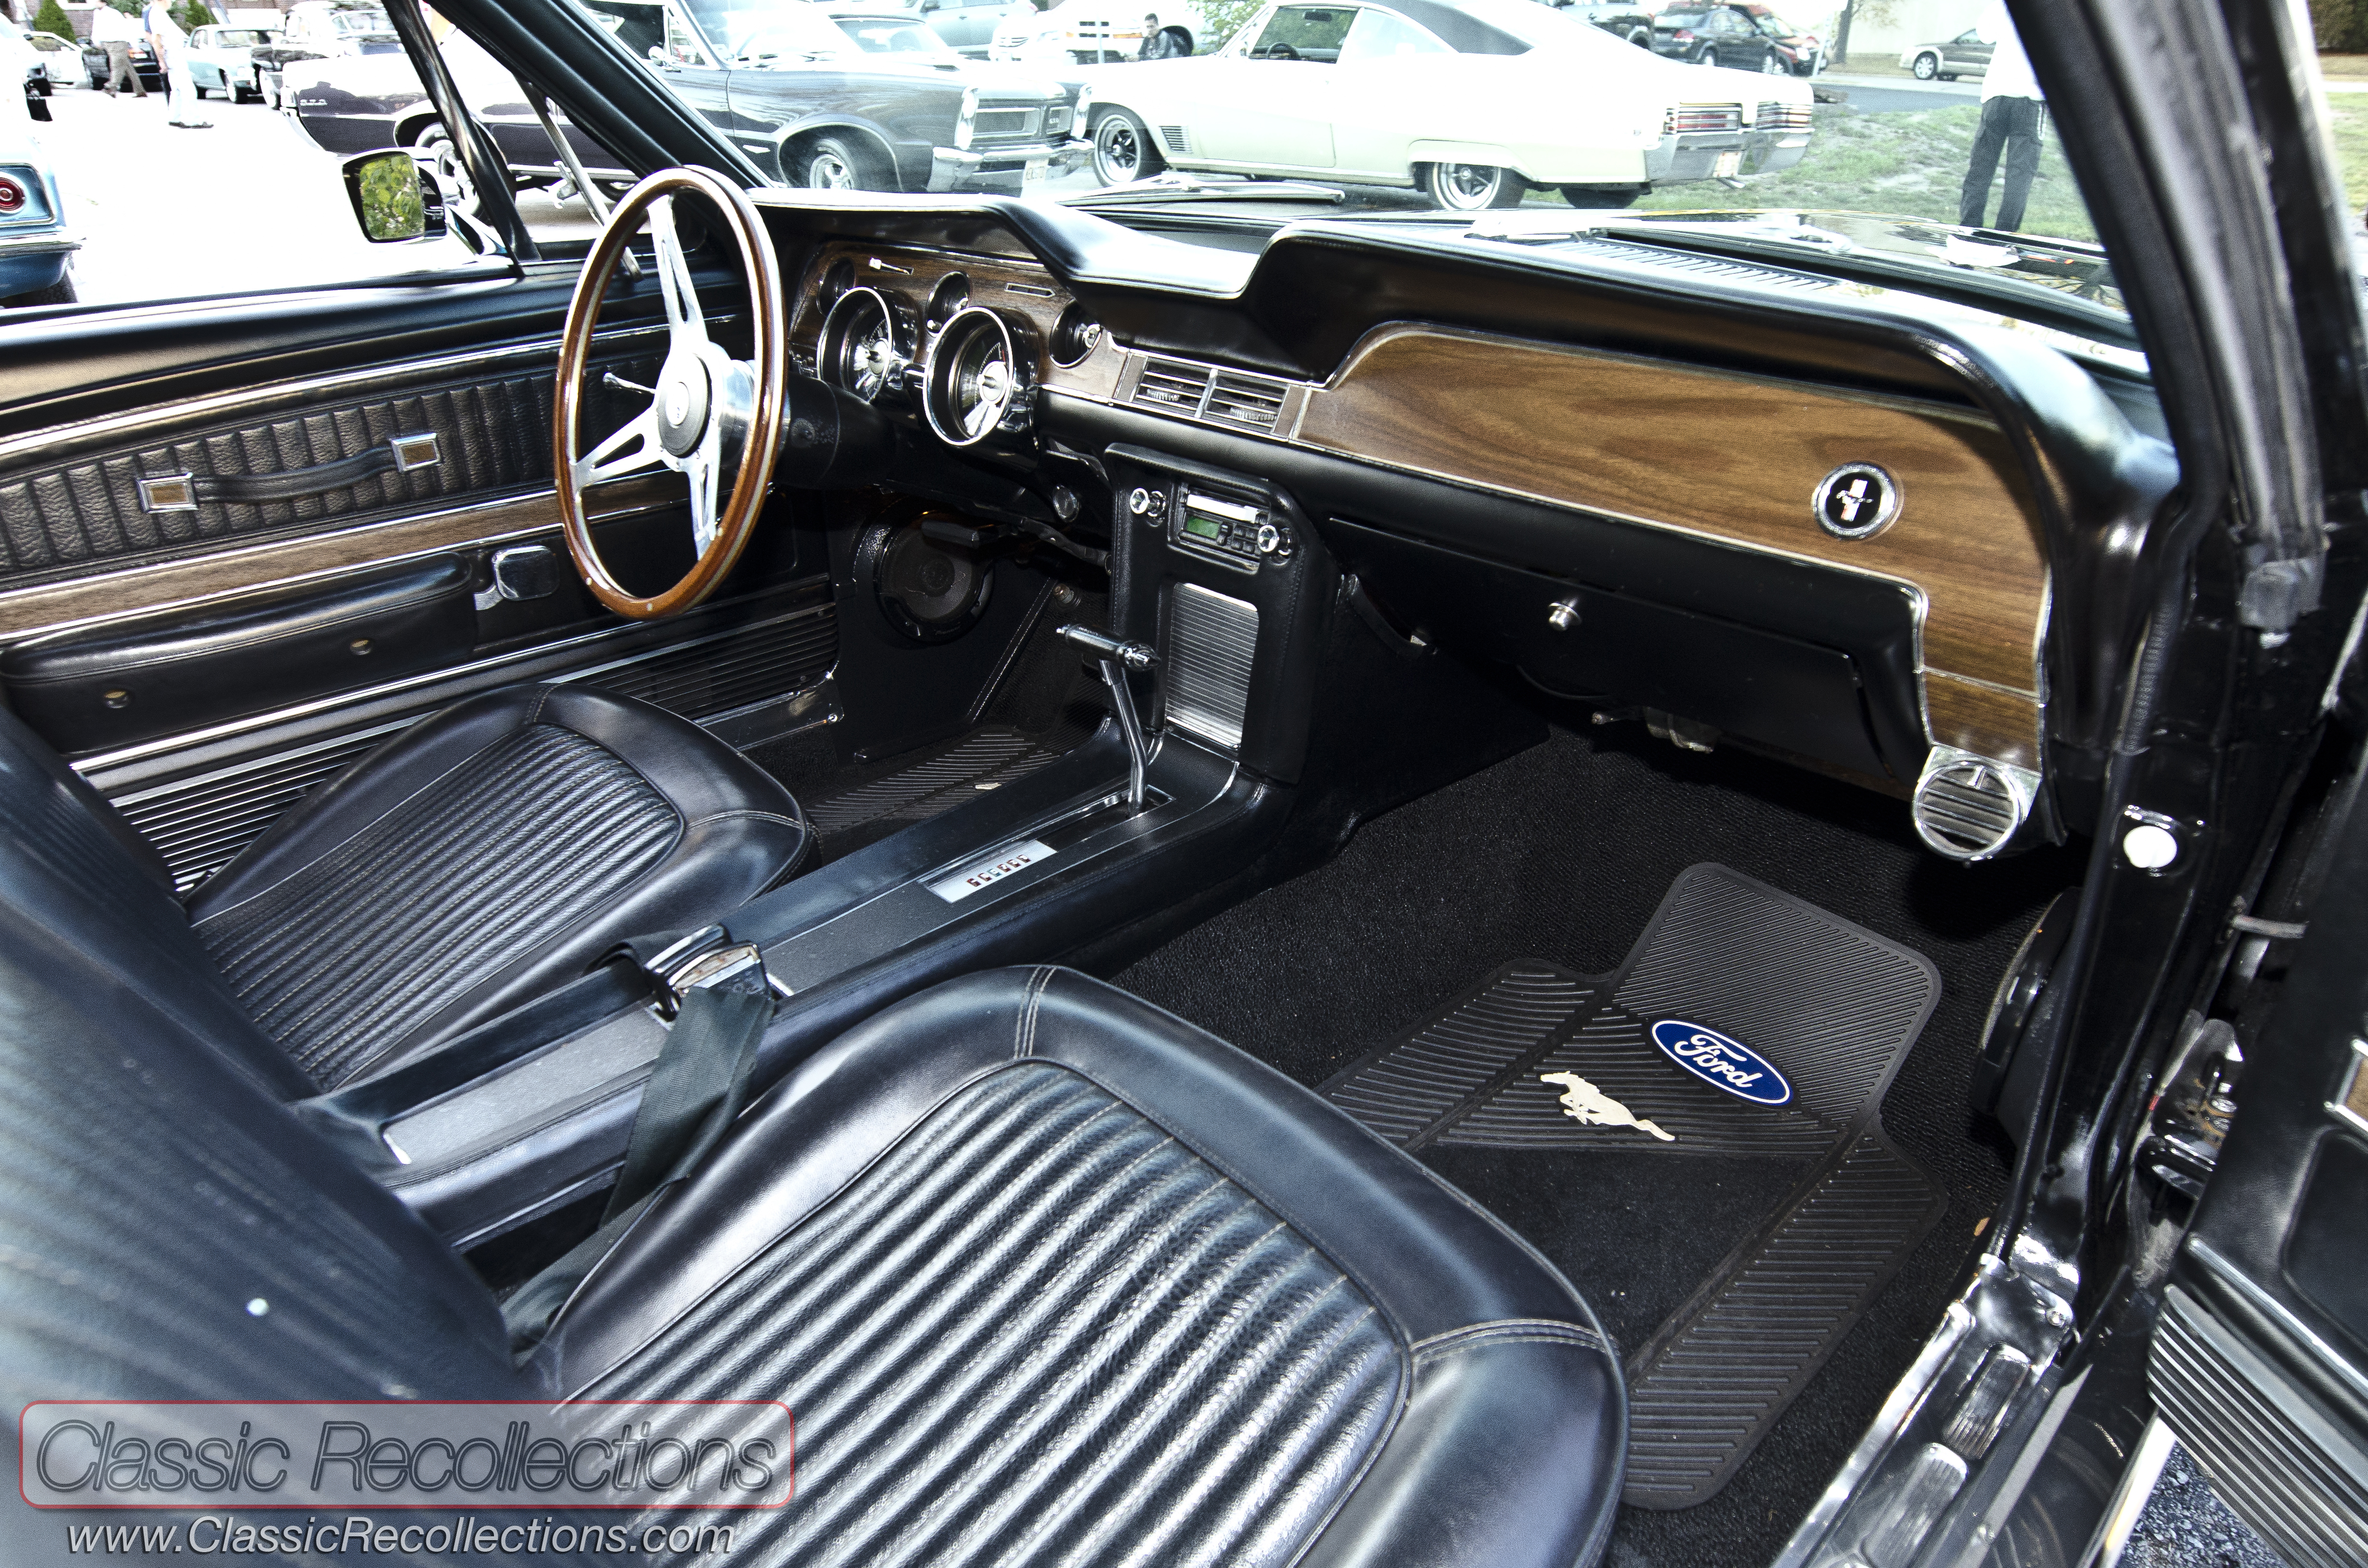 the interior looks stock on this 1968 ford mustang gt